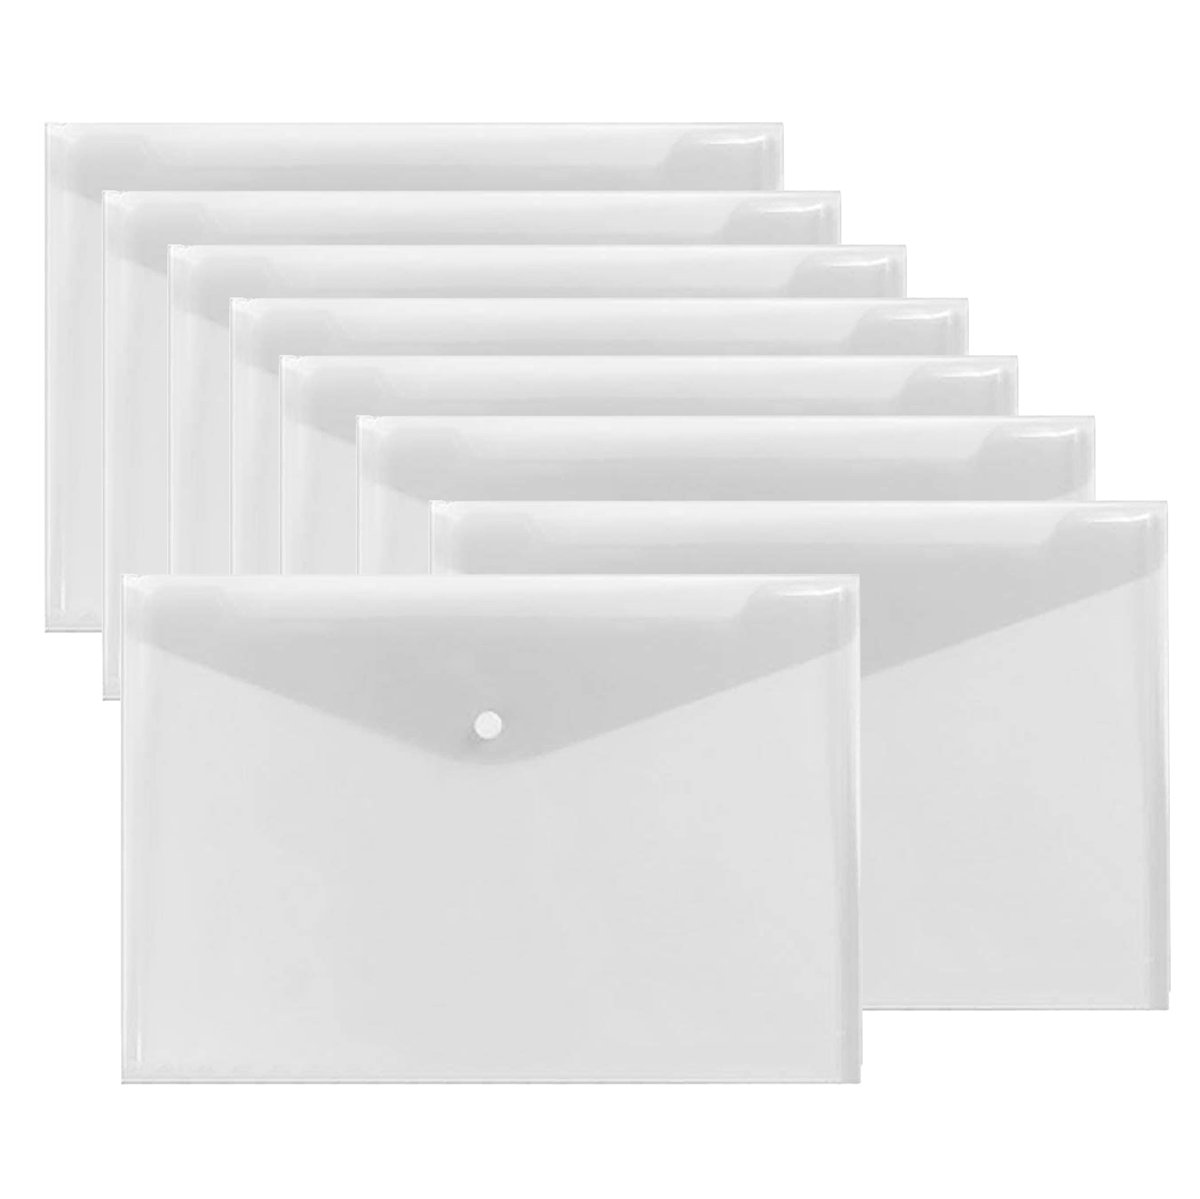 Warmter Poly Envelopes Clear Folder Plastic Clear Folders Clear Document Folder with Snap Button US Letter/A4 Size Set of 12 White